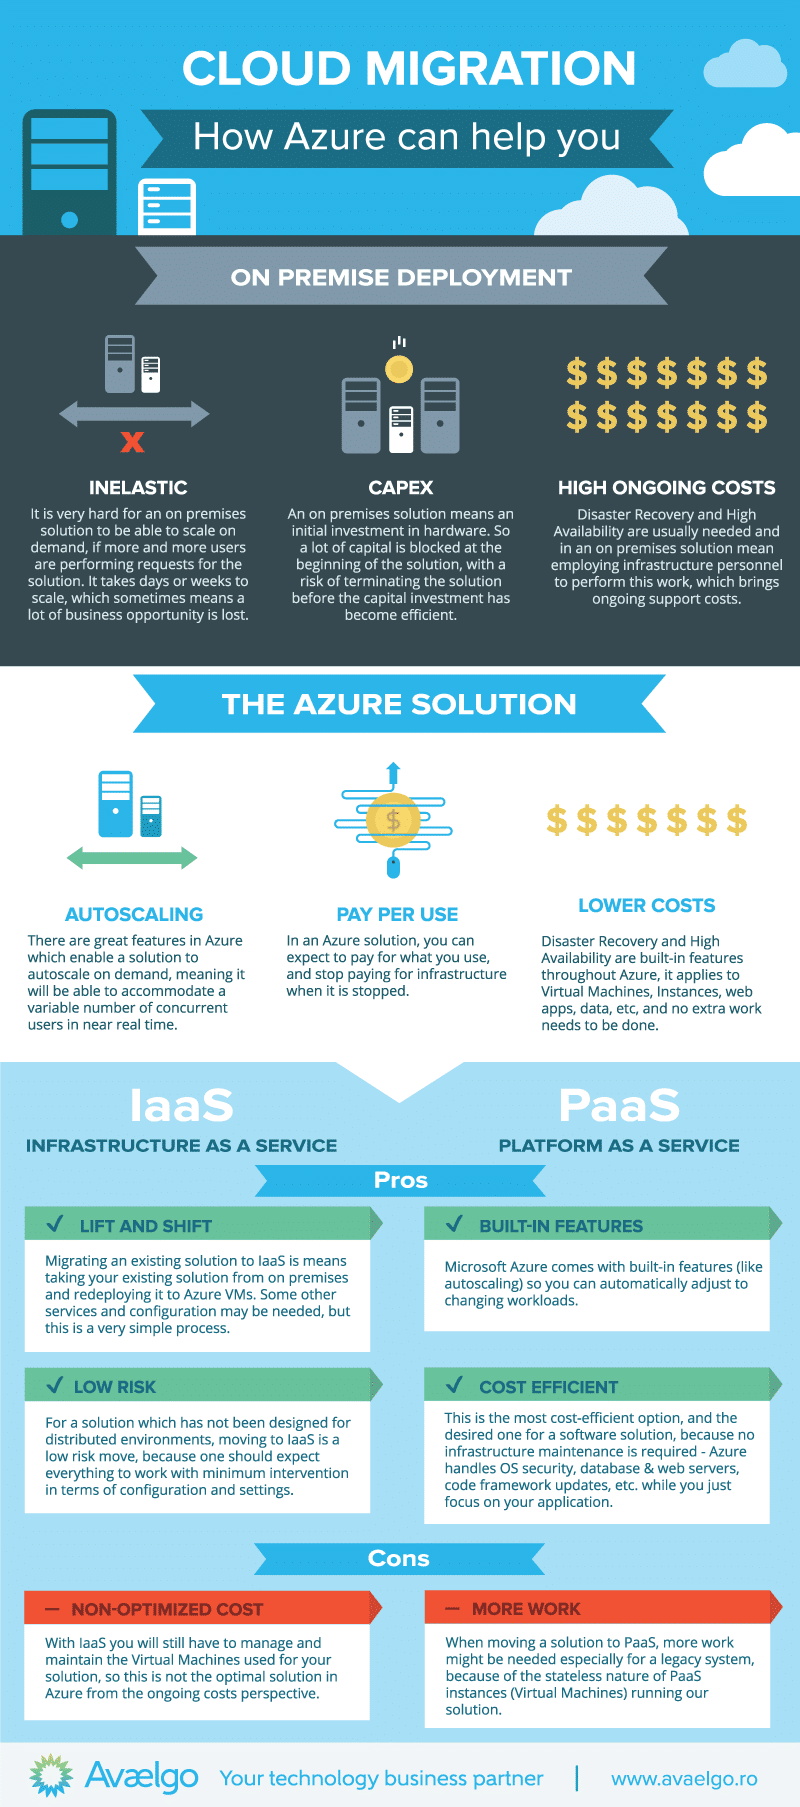 Cloud-Migration-Infographic-Avaelgo